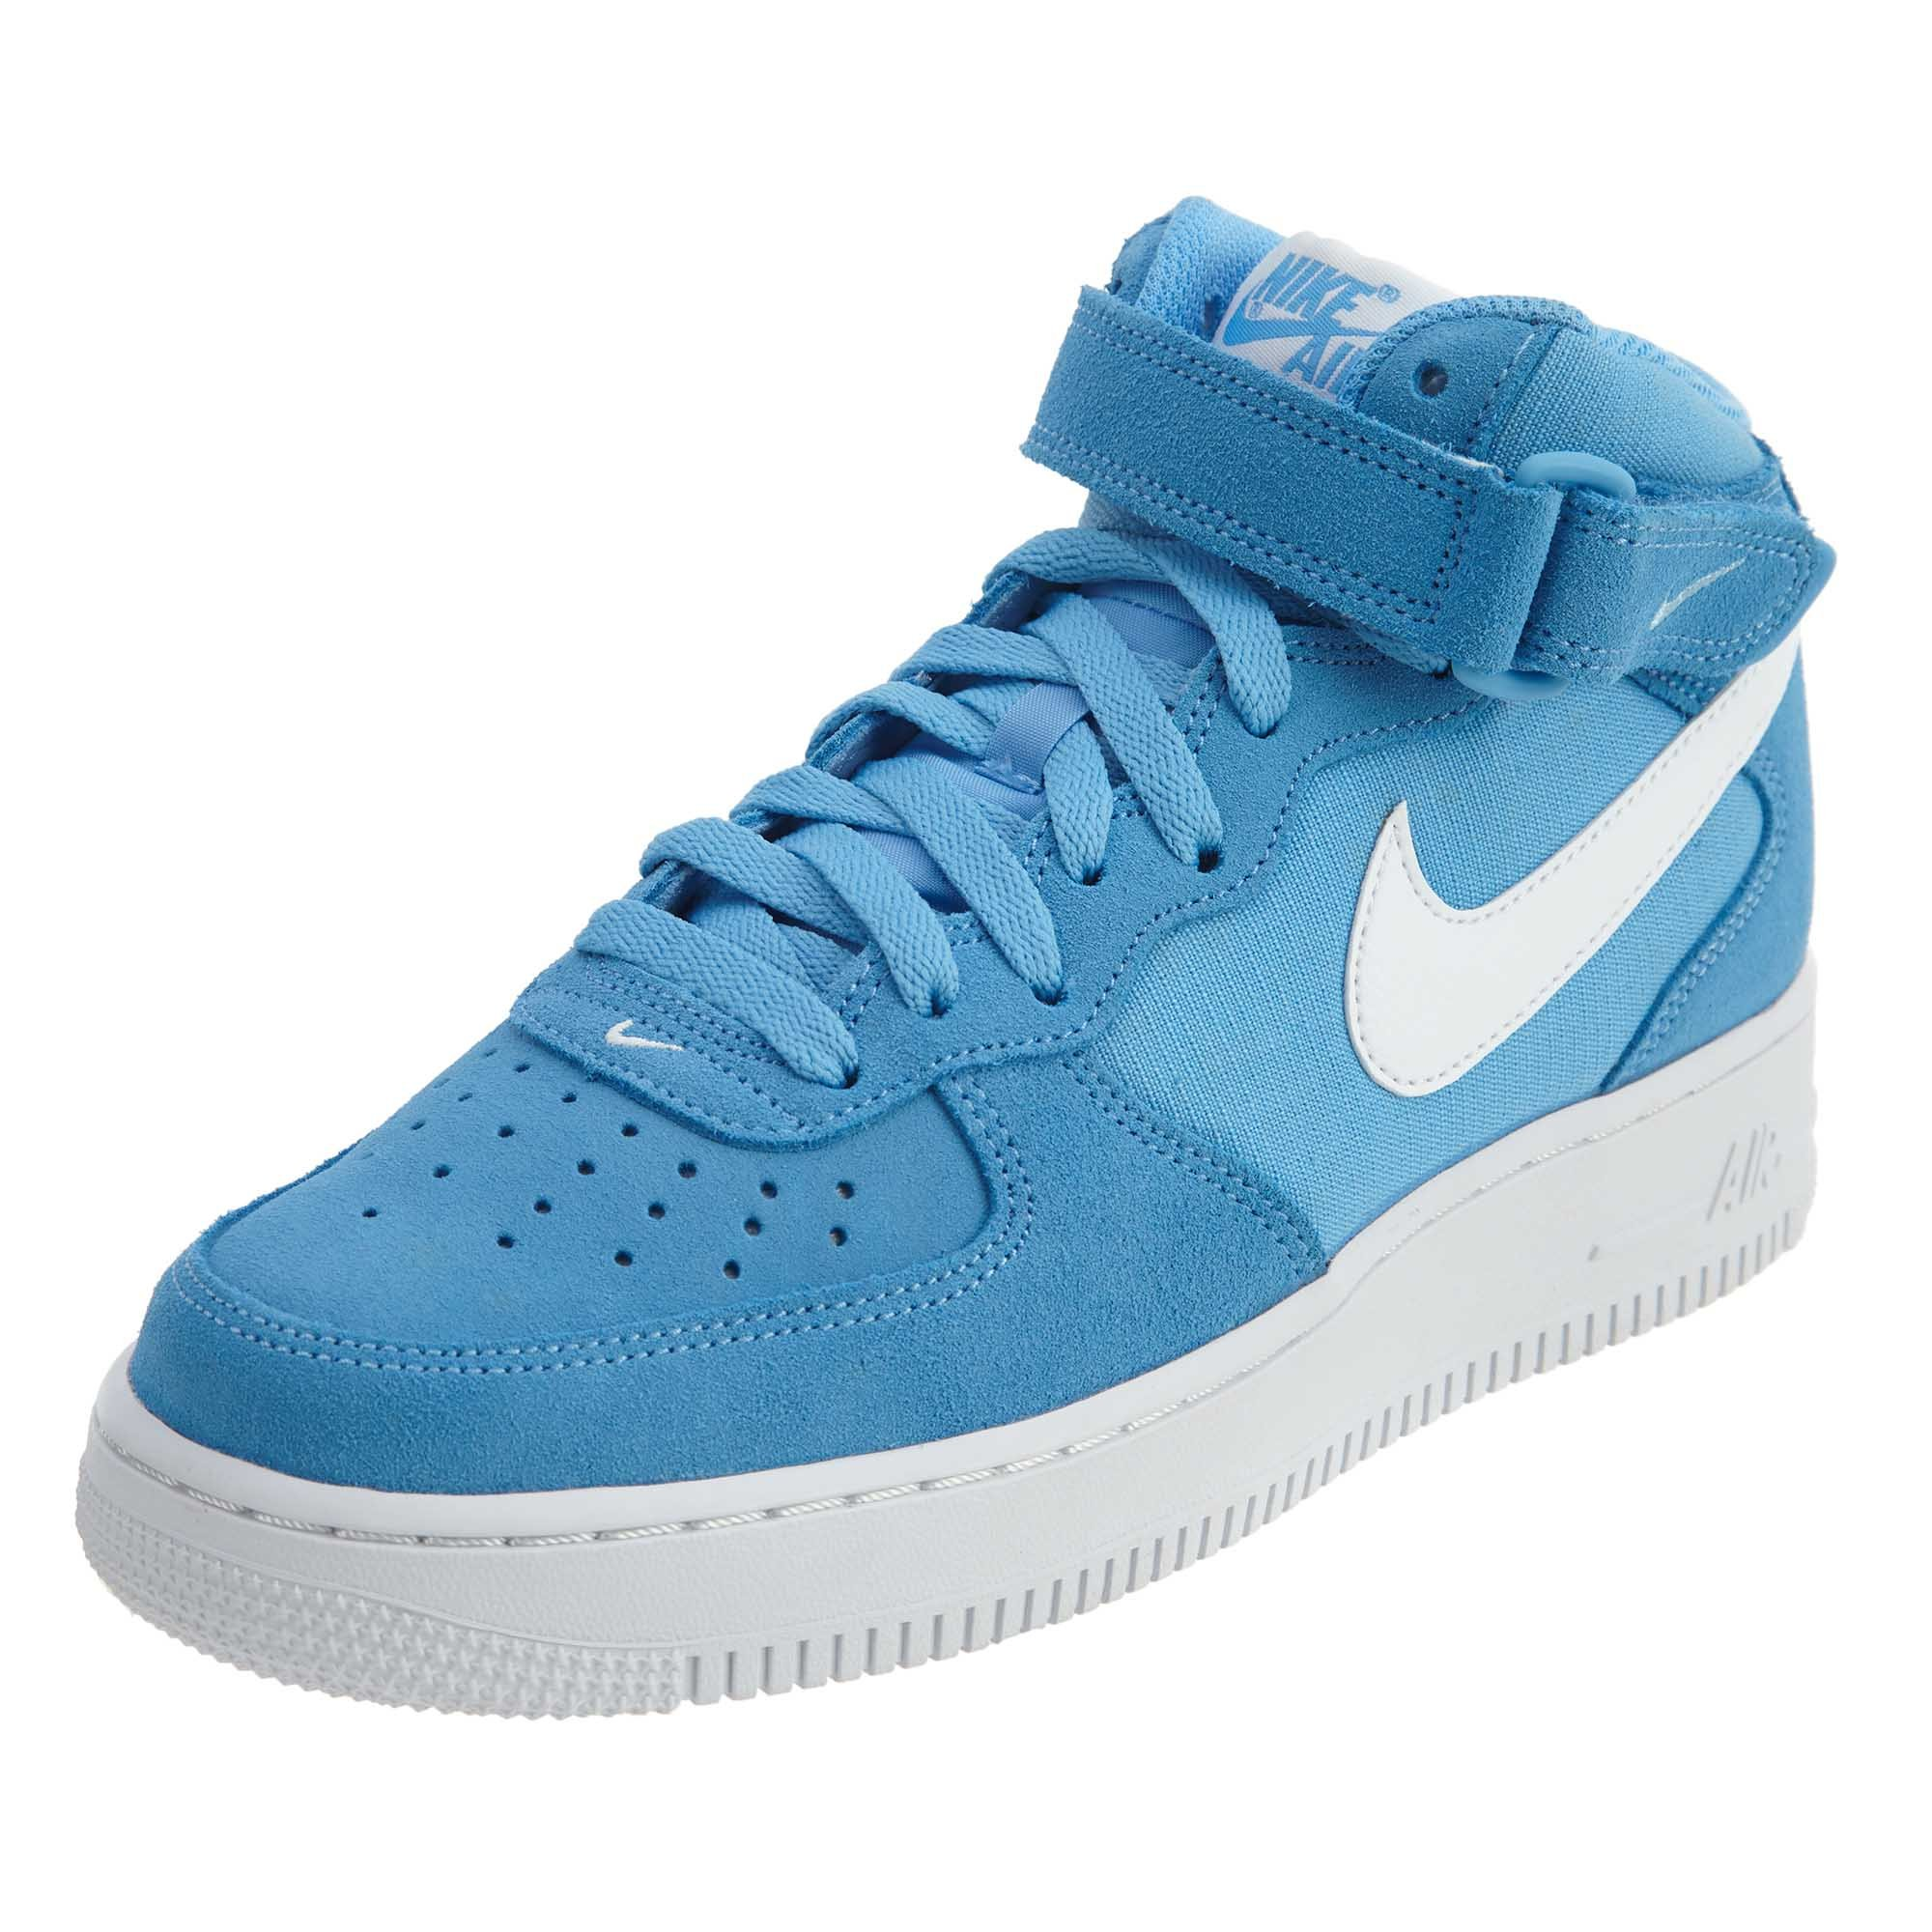 super popular 1644a 40436 Galleon - Nike Air Force 1 Mid 07 Mens Style   315123-409 Size   8.5 M US